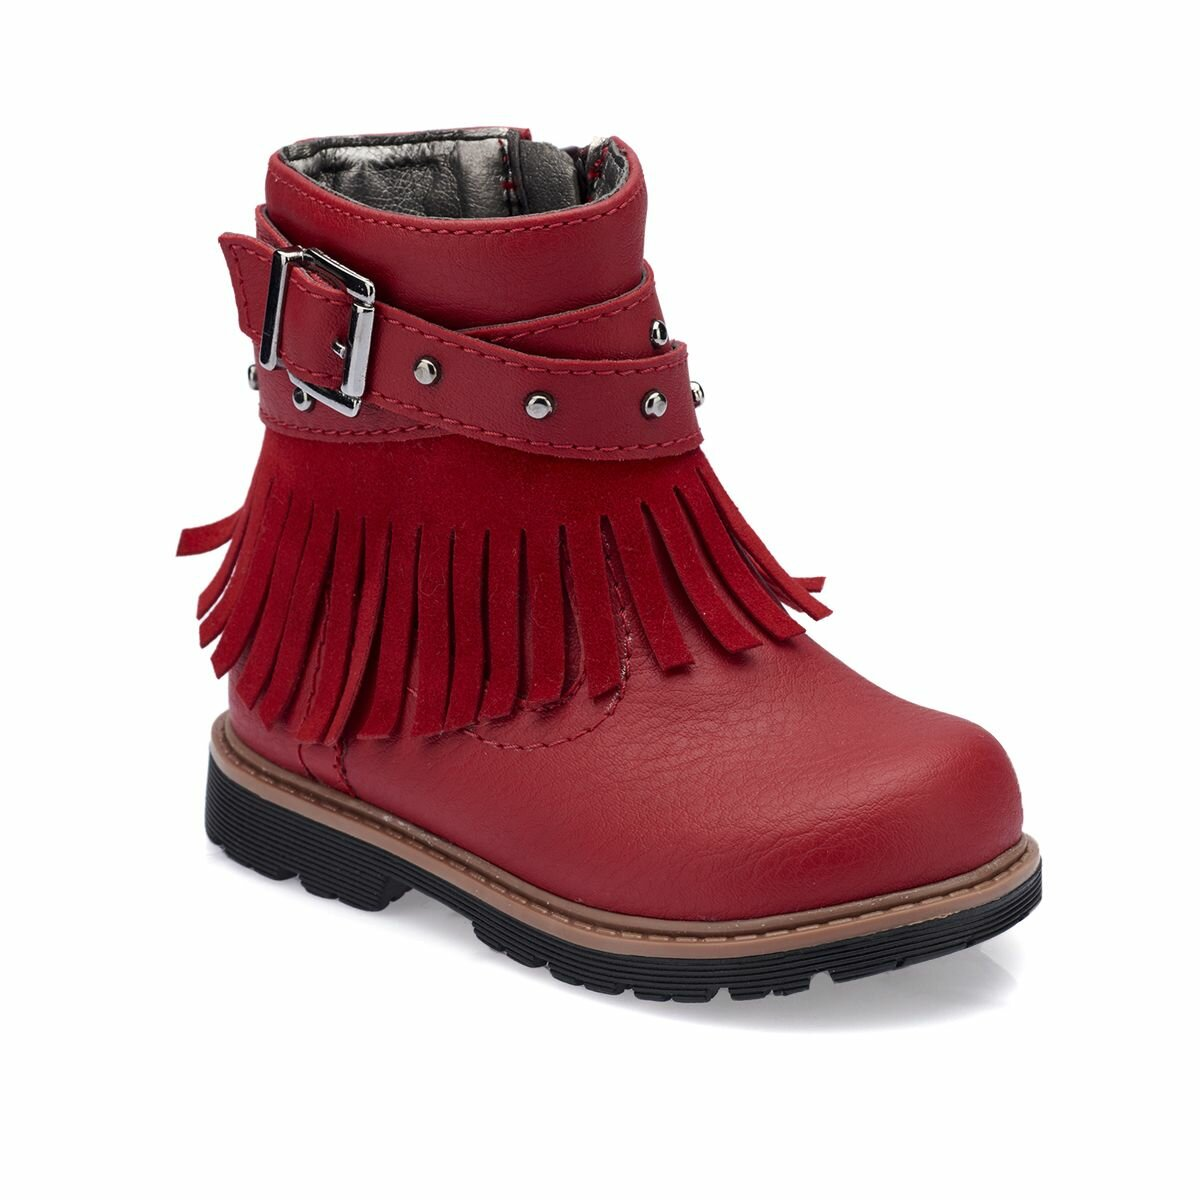 FLO 82.510523.B Red Female Child Boots Polaris